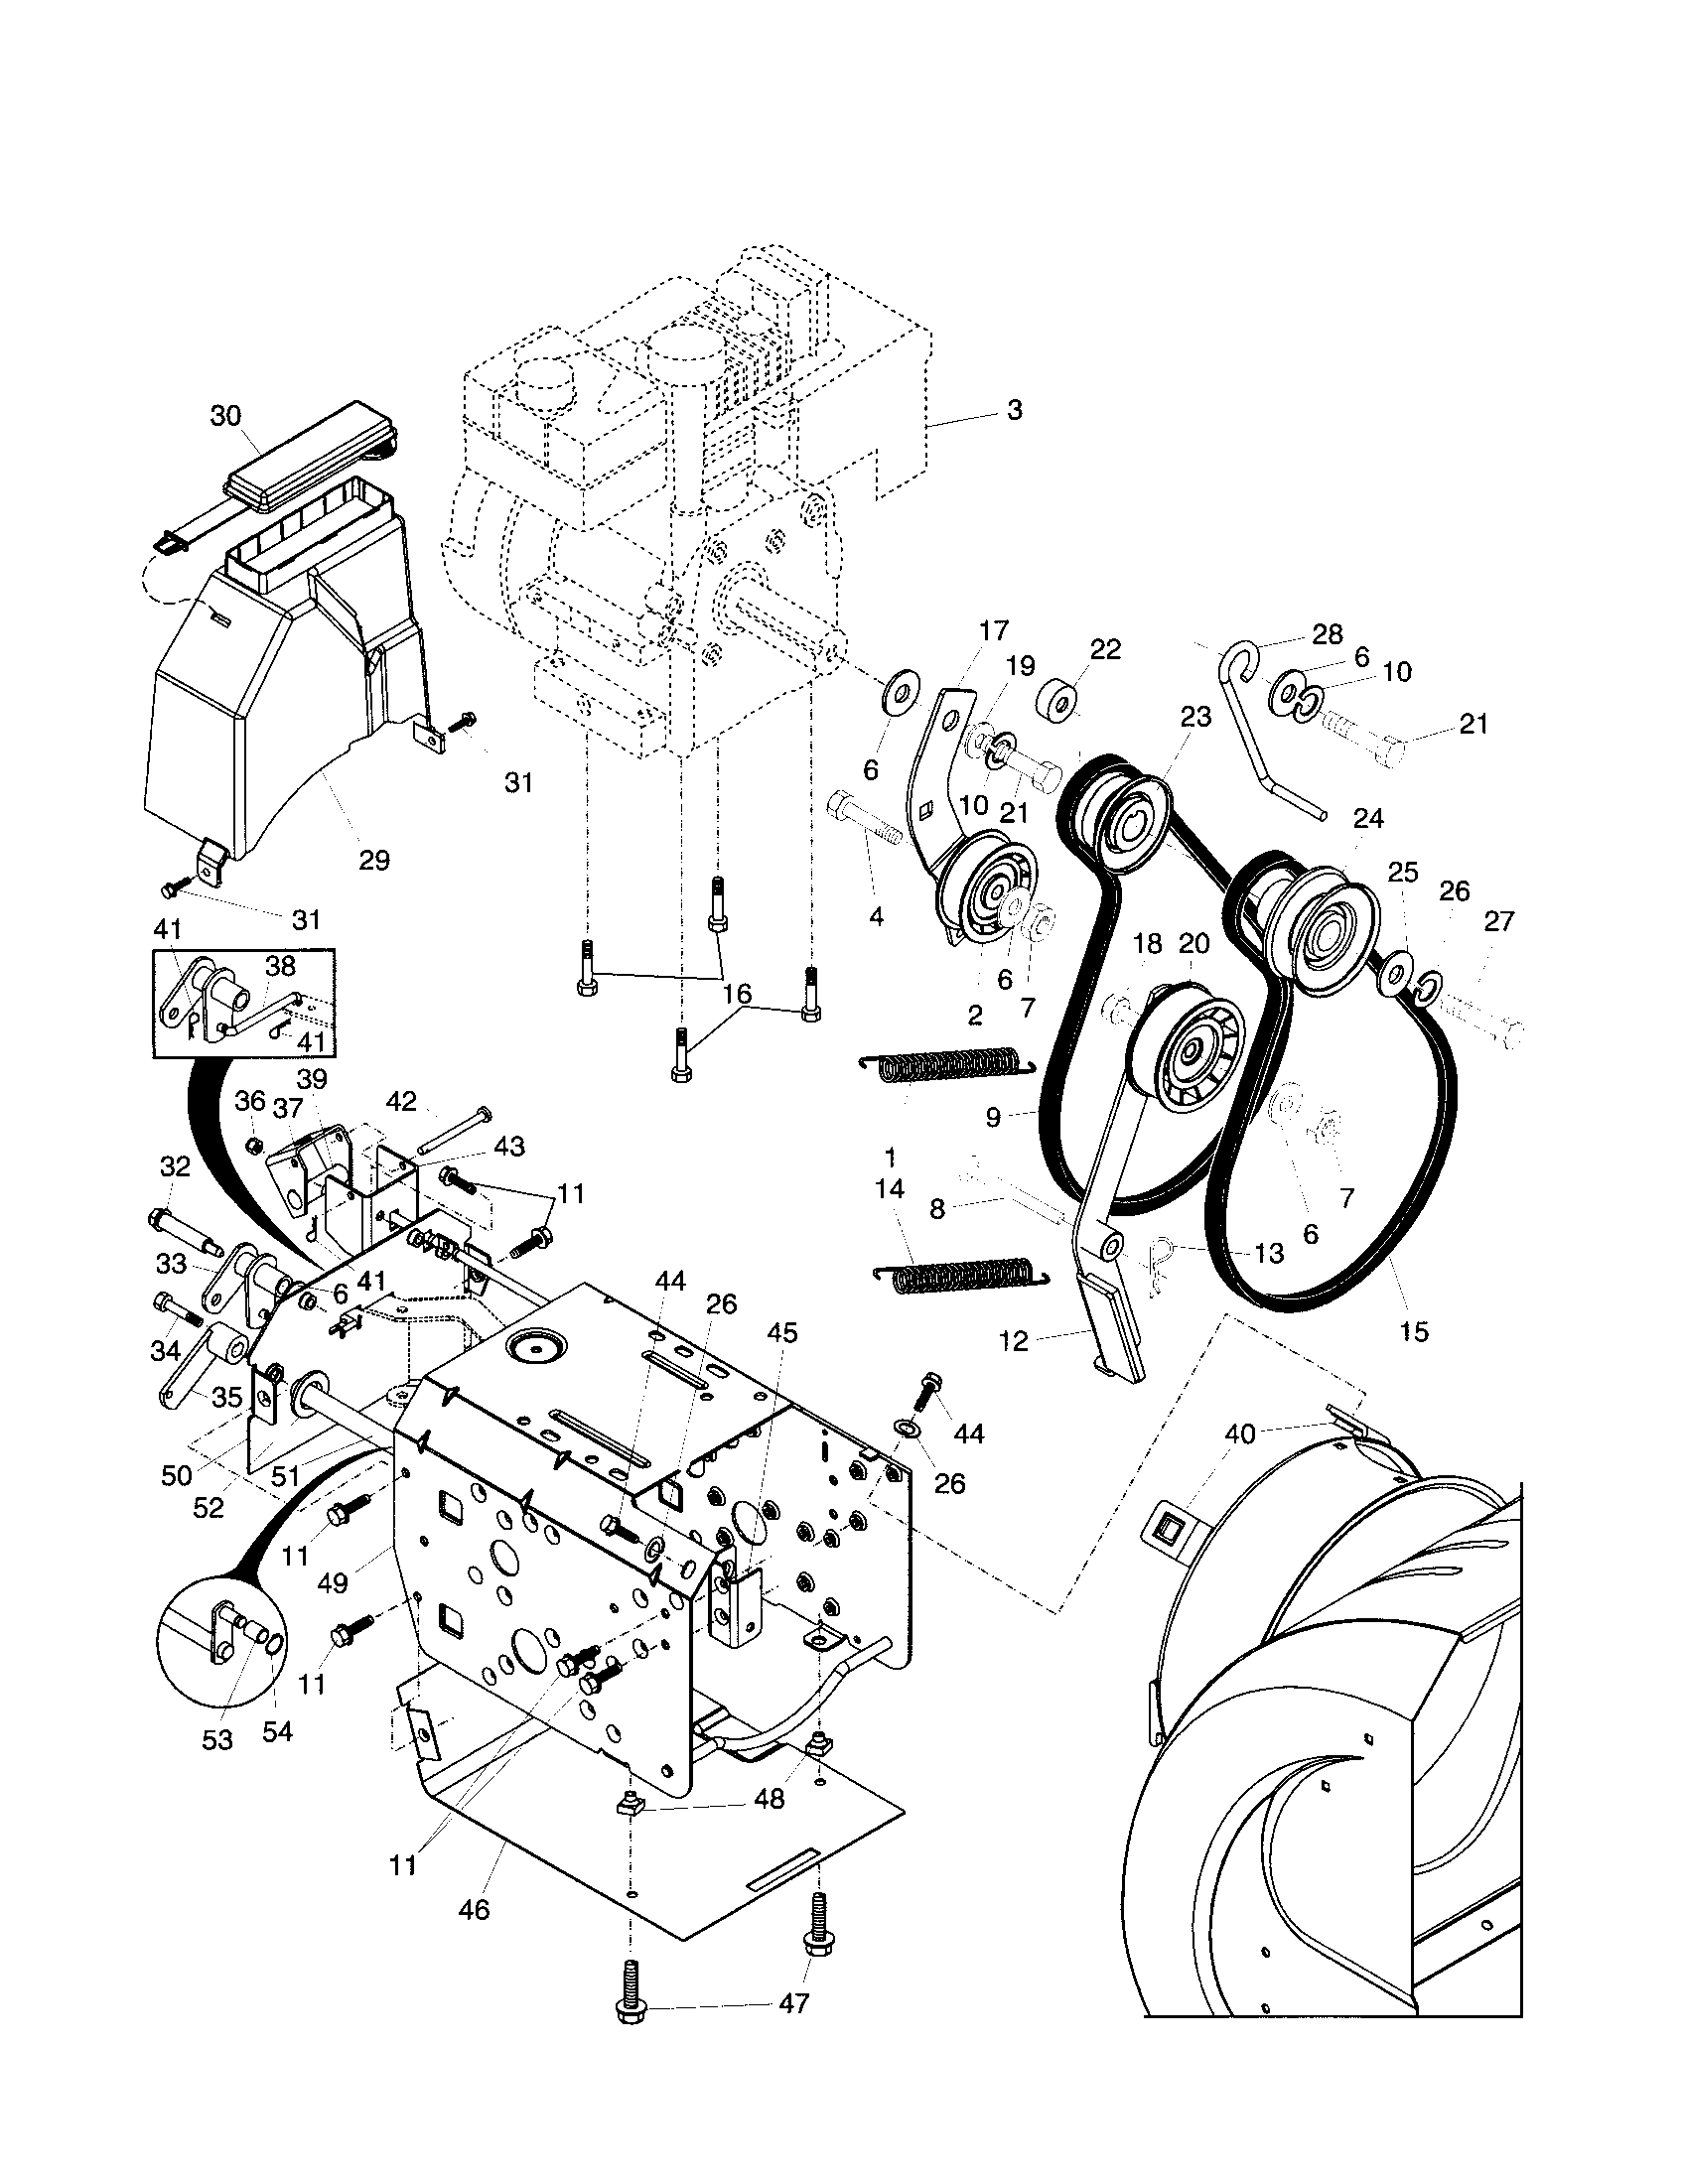 CHASSIS/ENGINE/PULLEYS Diagram & Parts List for Model